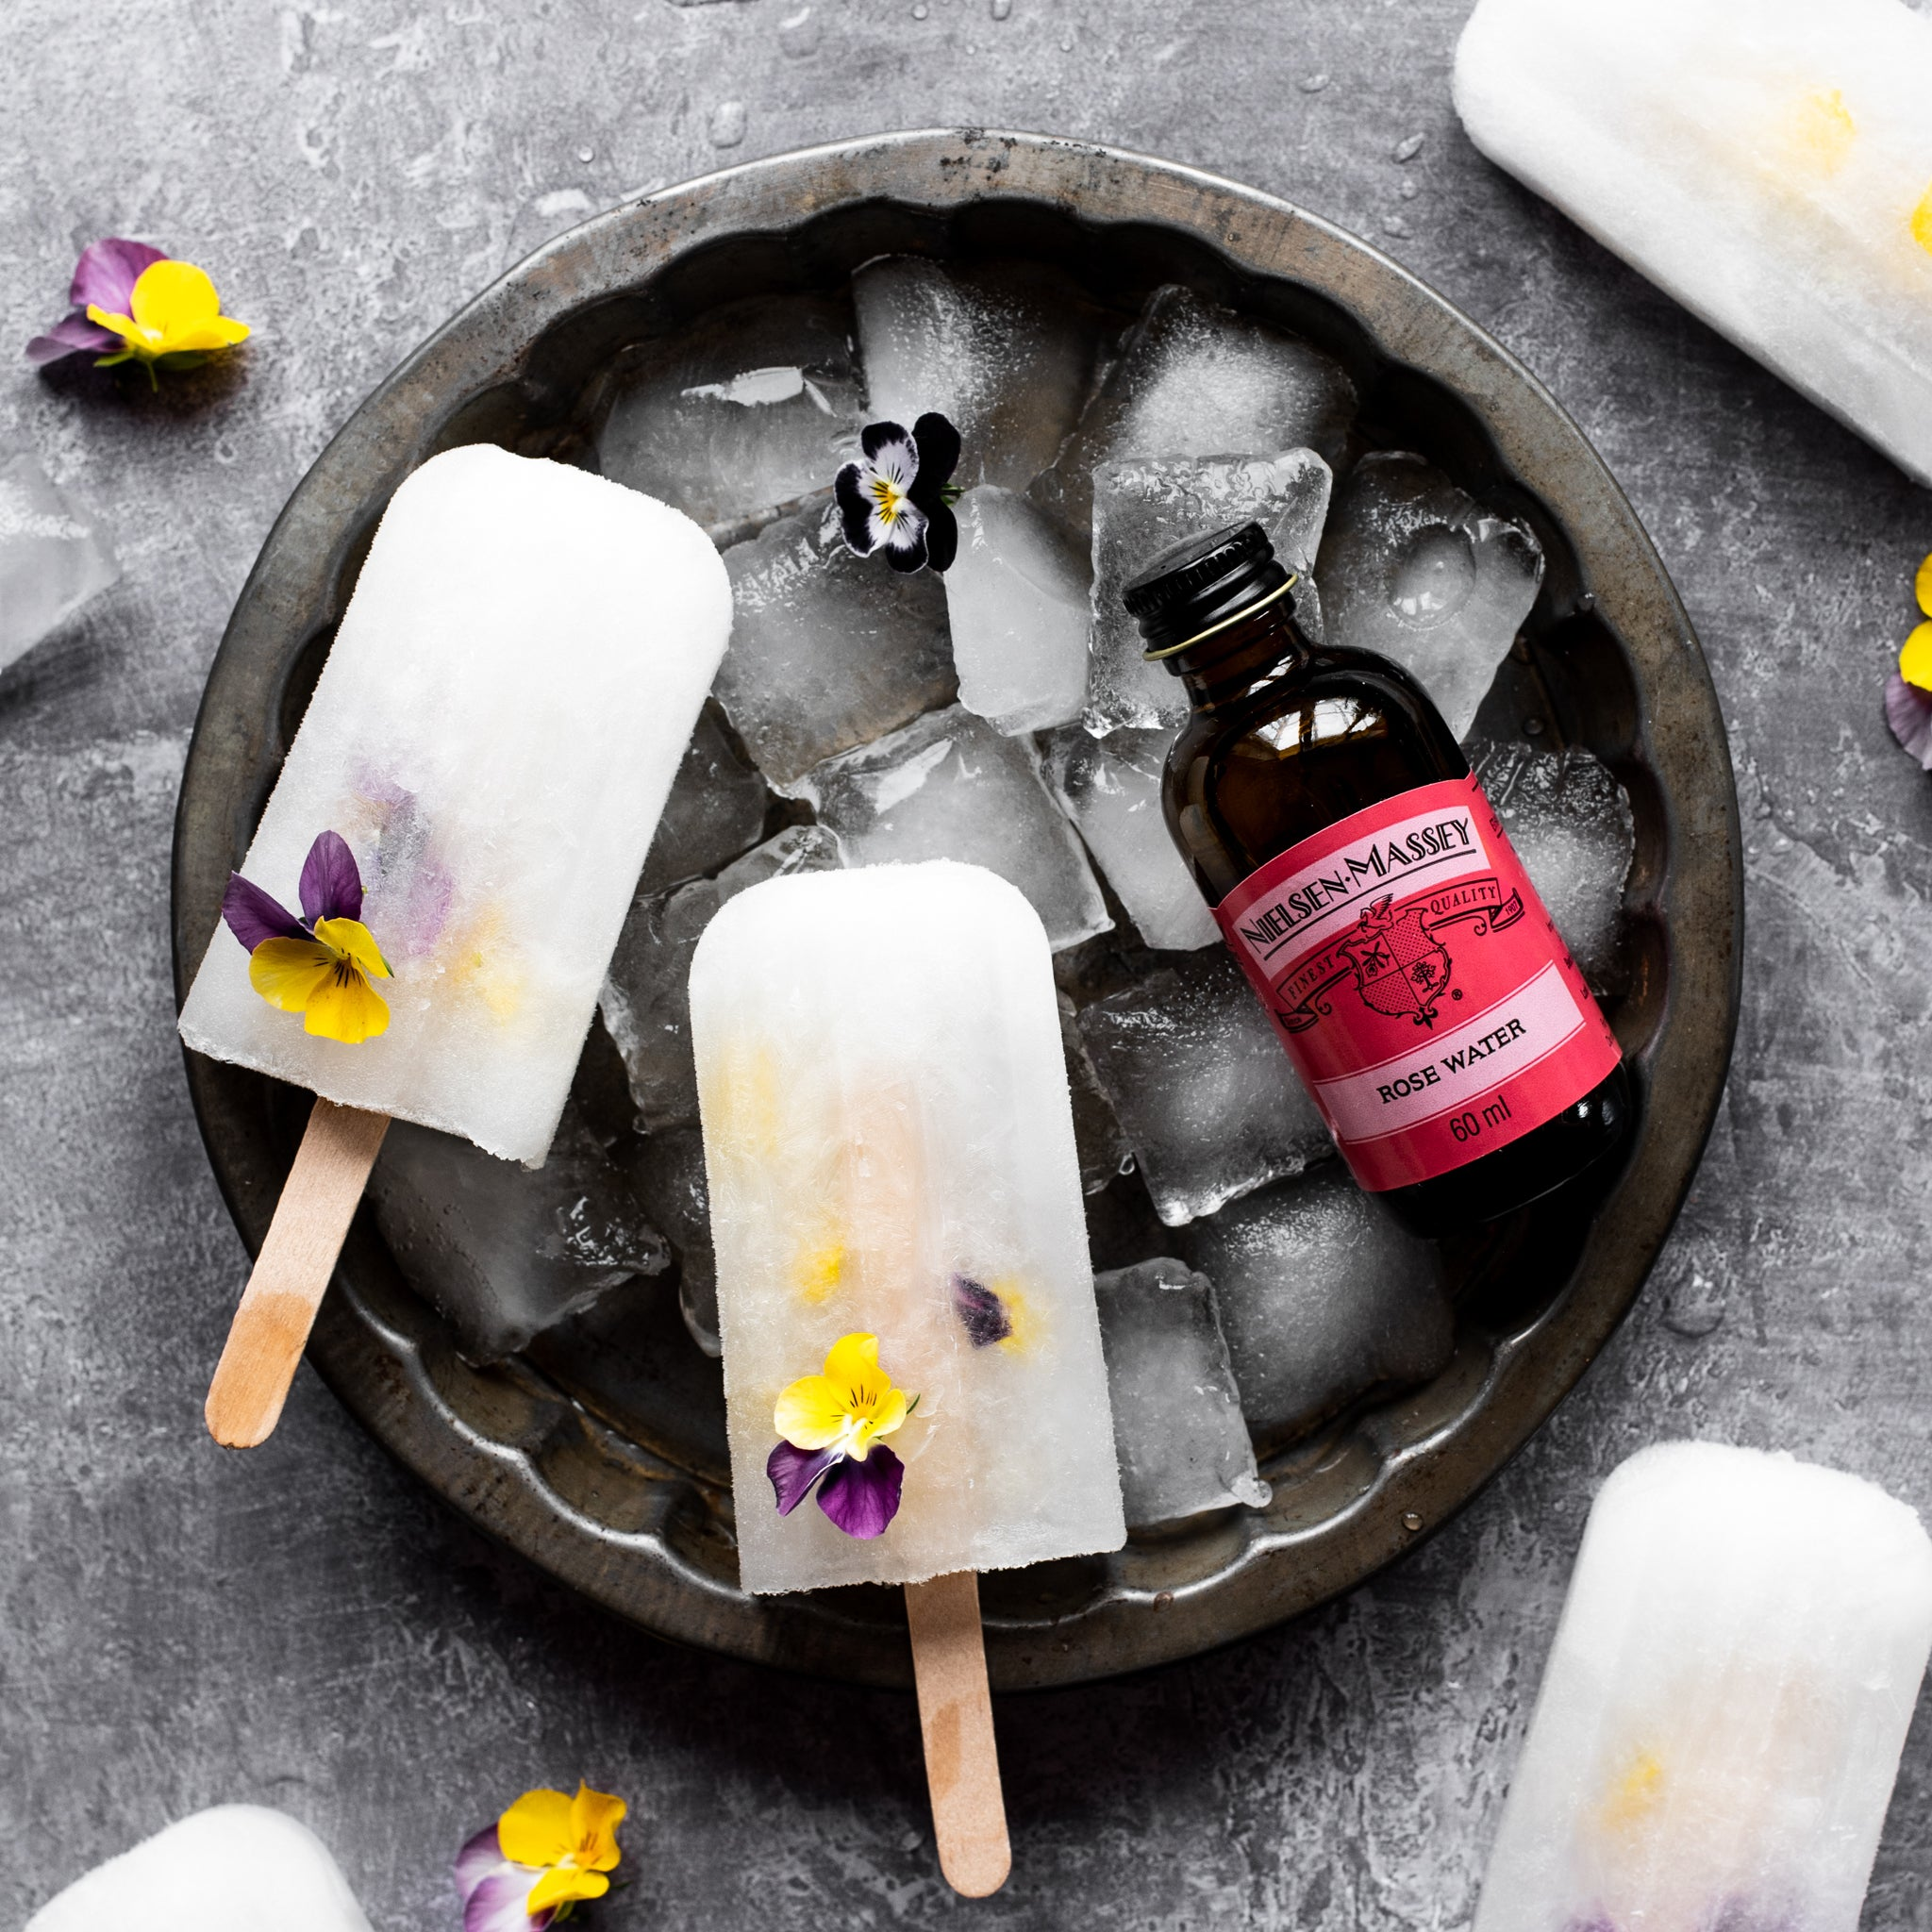 Floral-Ice-Lollies-SQUARE-6.jpg